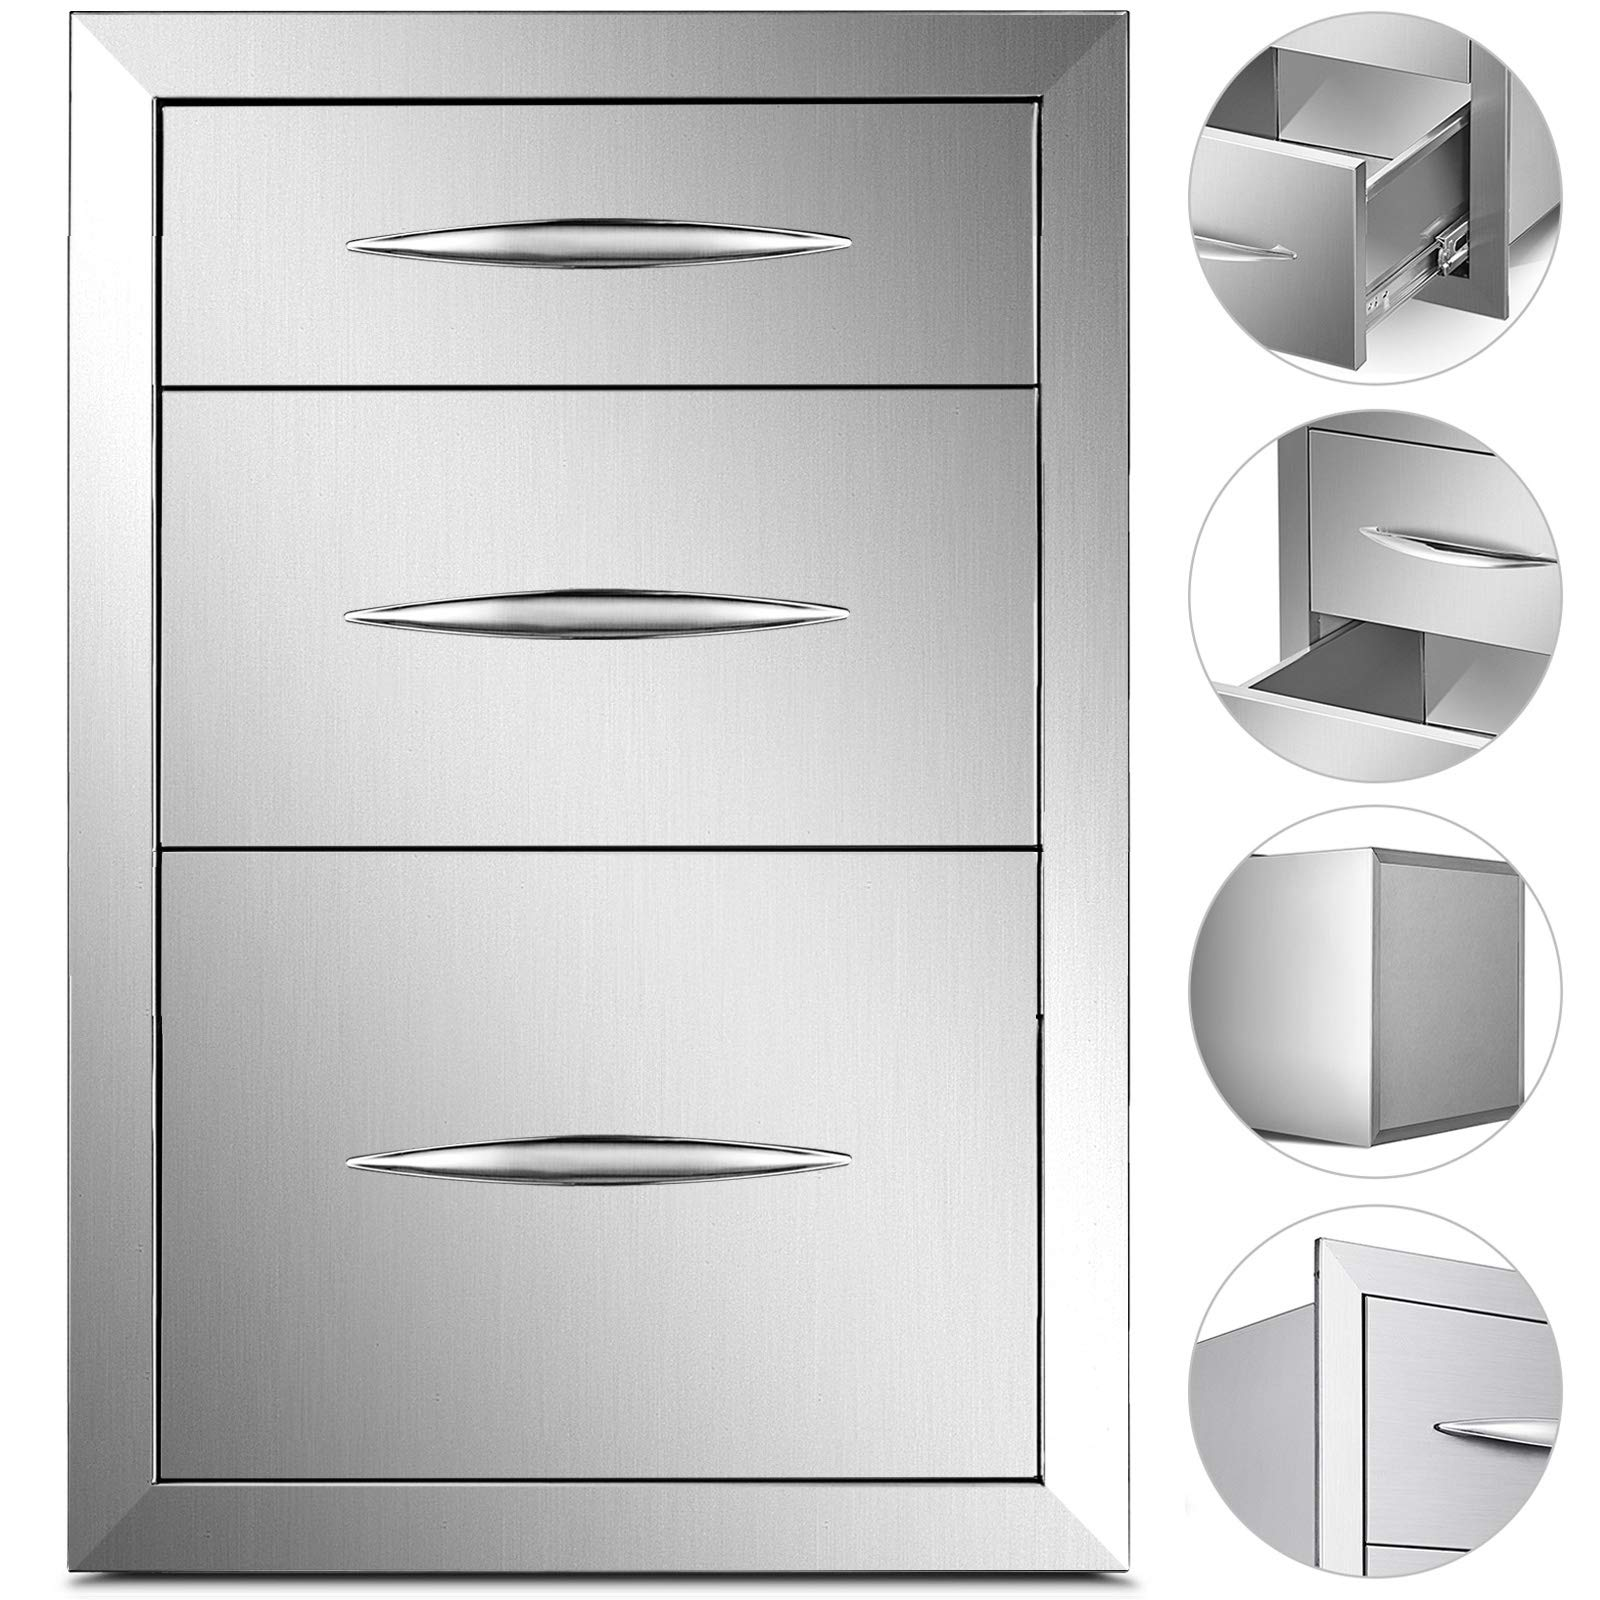 Mophorn 15x21 Inch Outdoor Kitchen Stainless Steel Triple Access Drawers BBQ Storage with Chrome Handle, Silver by Mophorn